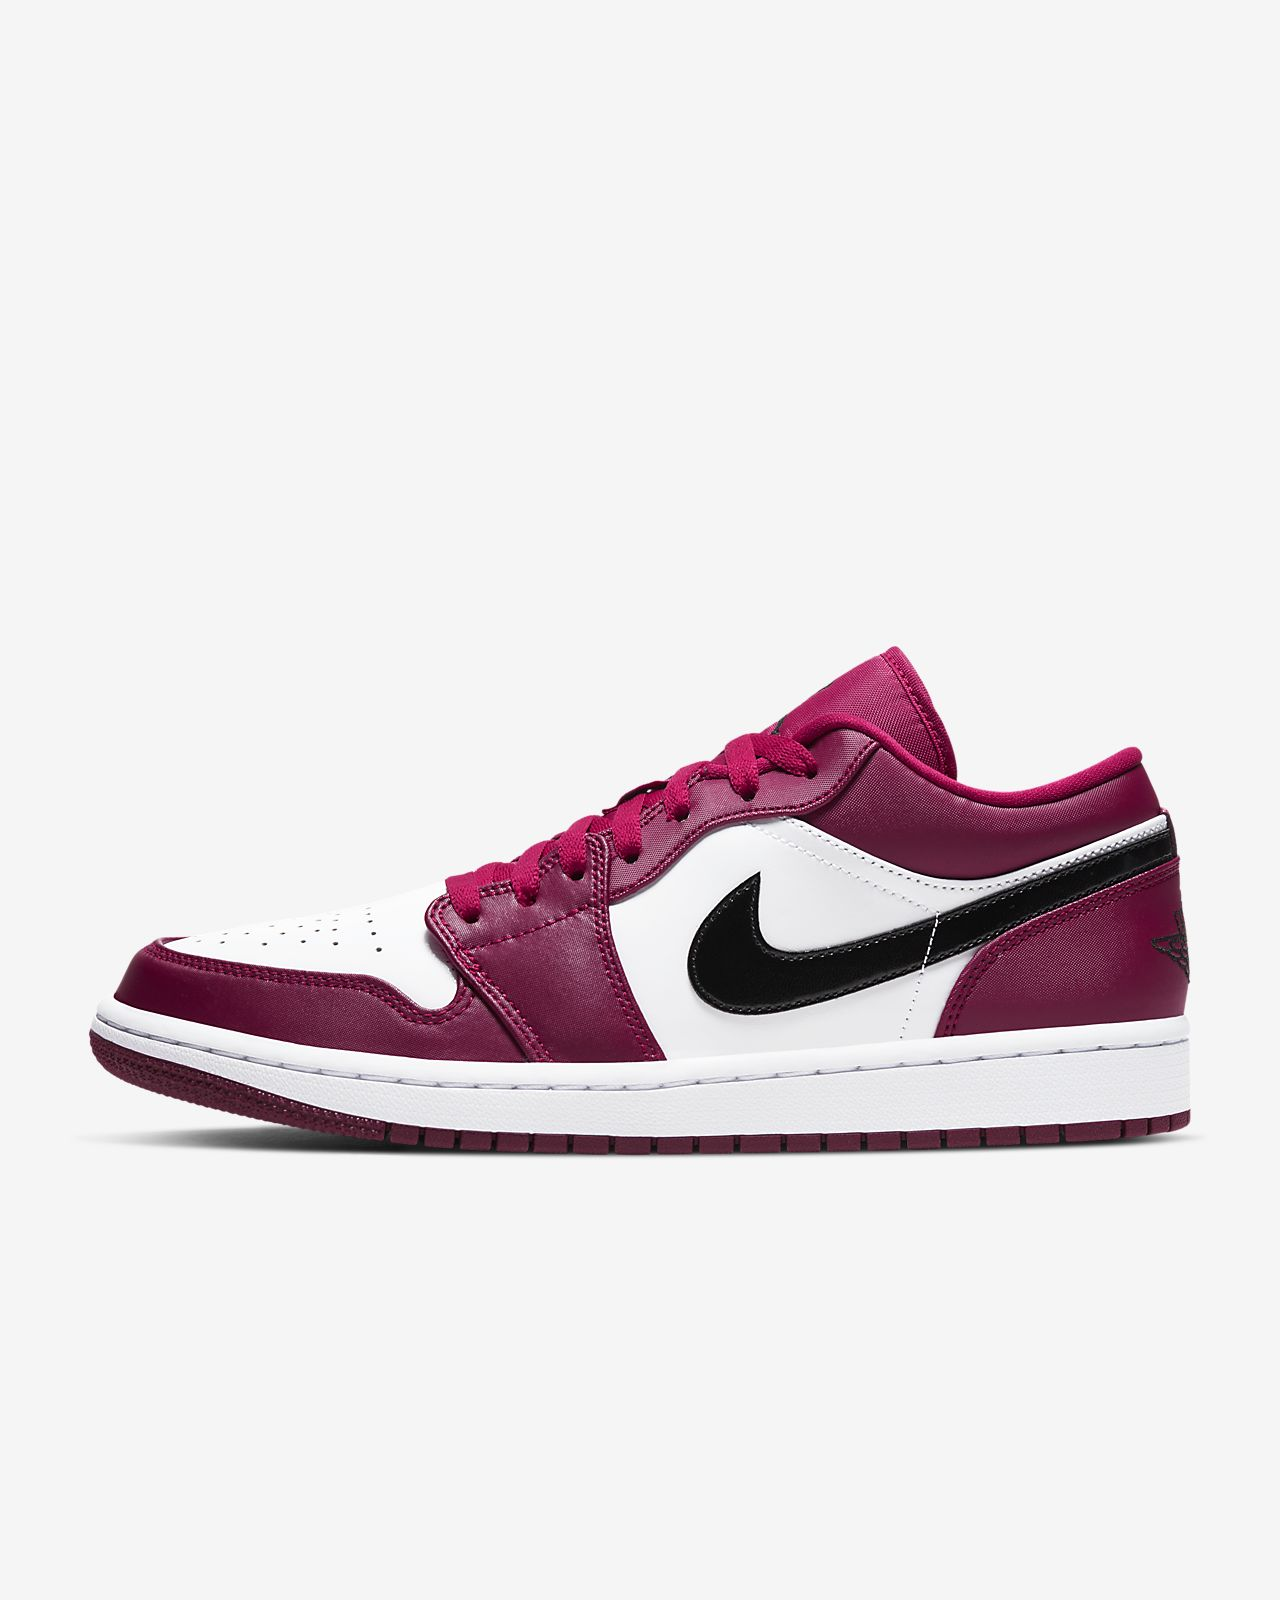 nike air jordan 1 low rouge